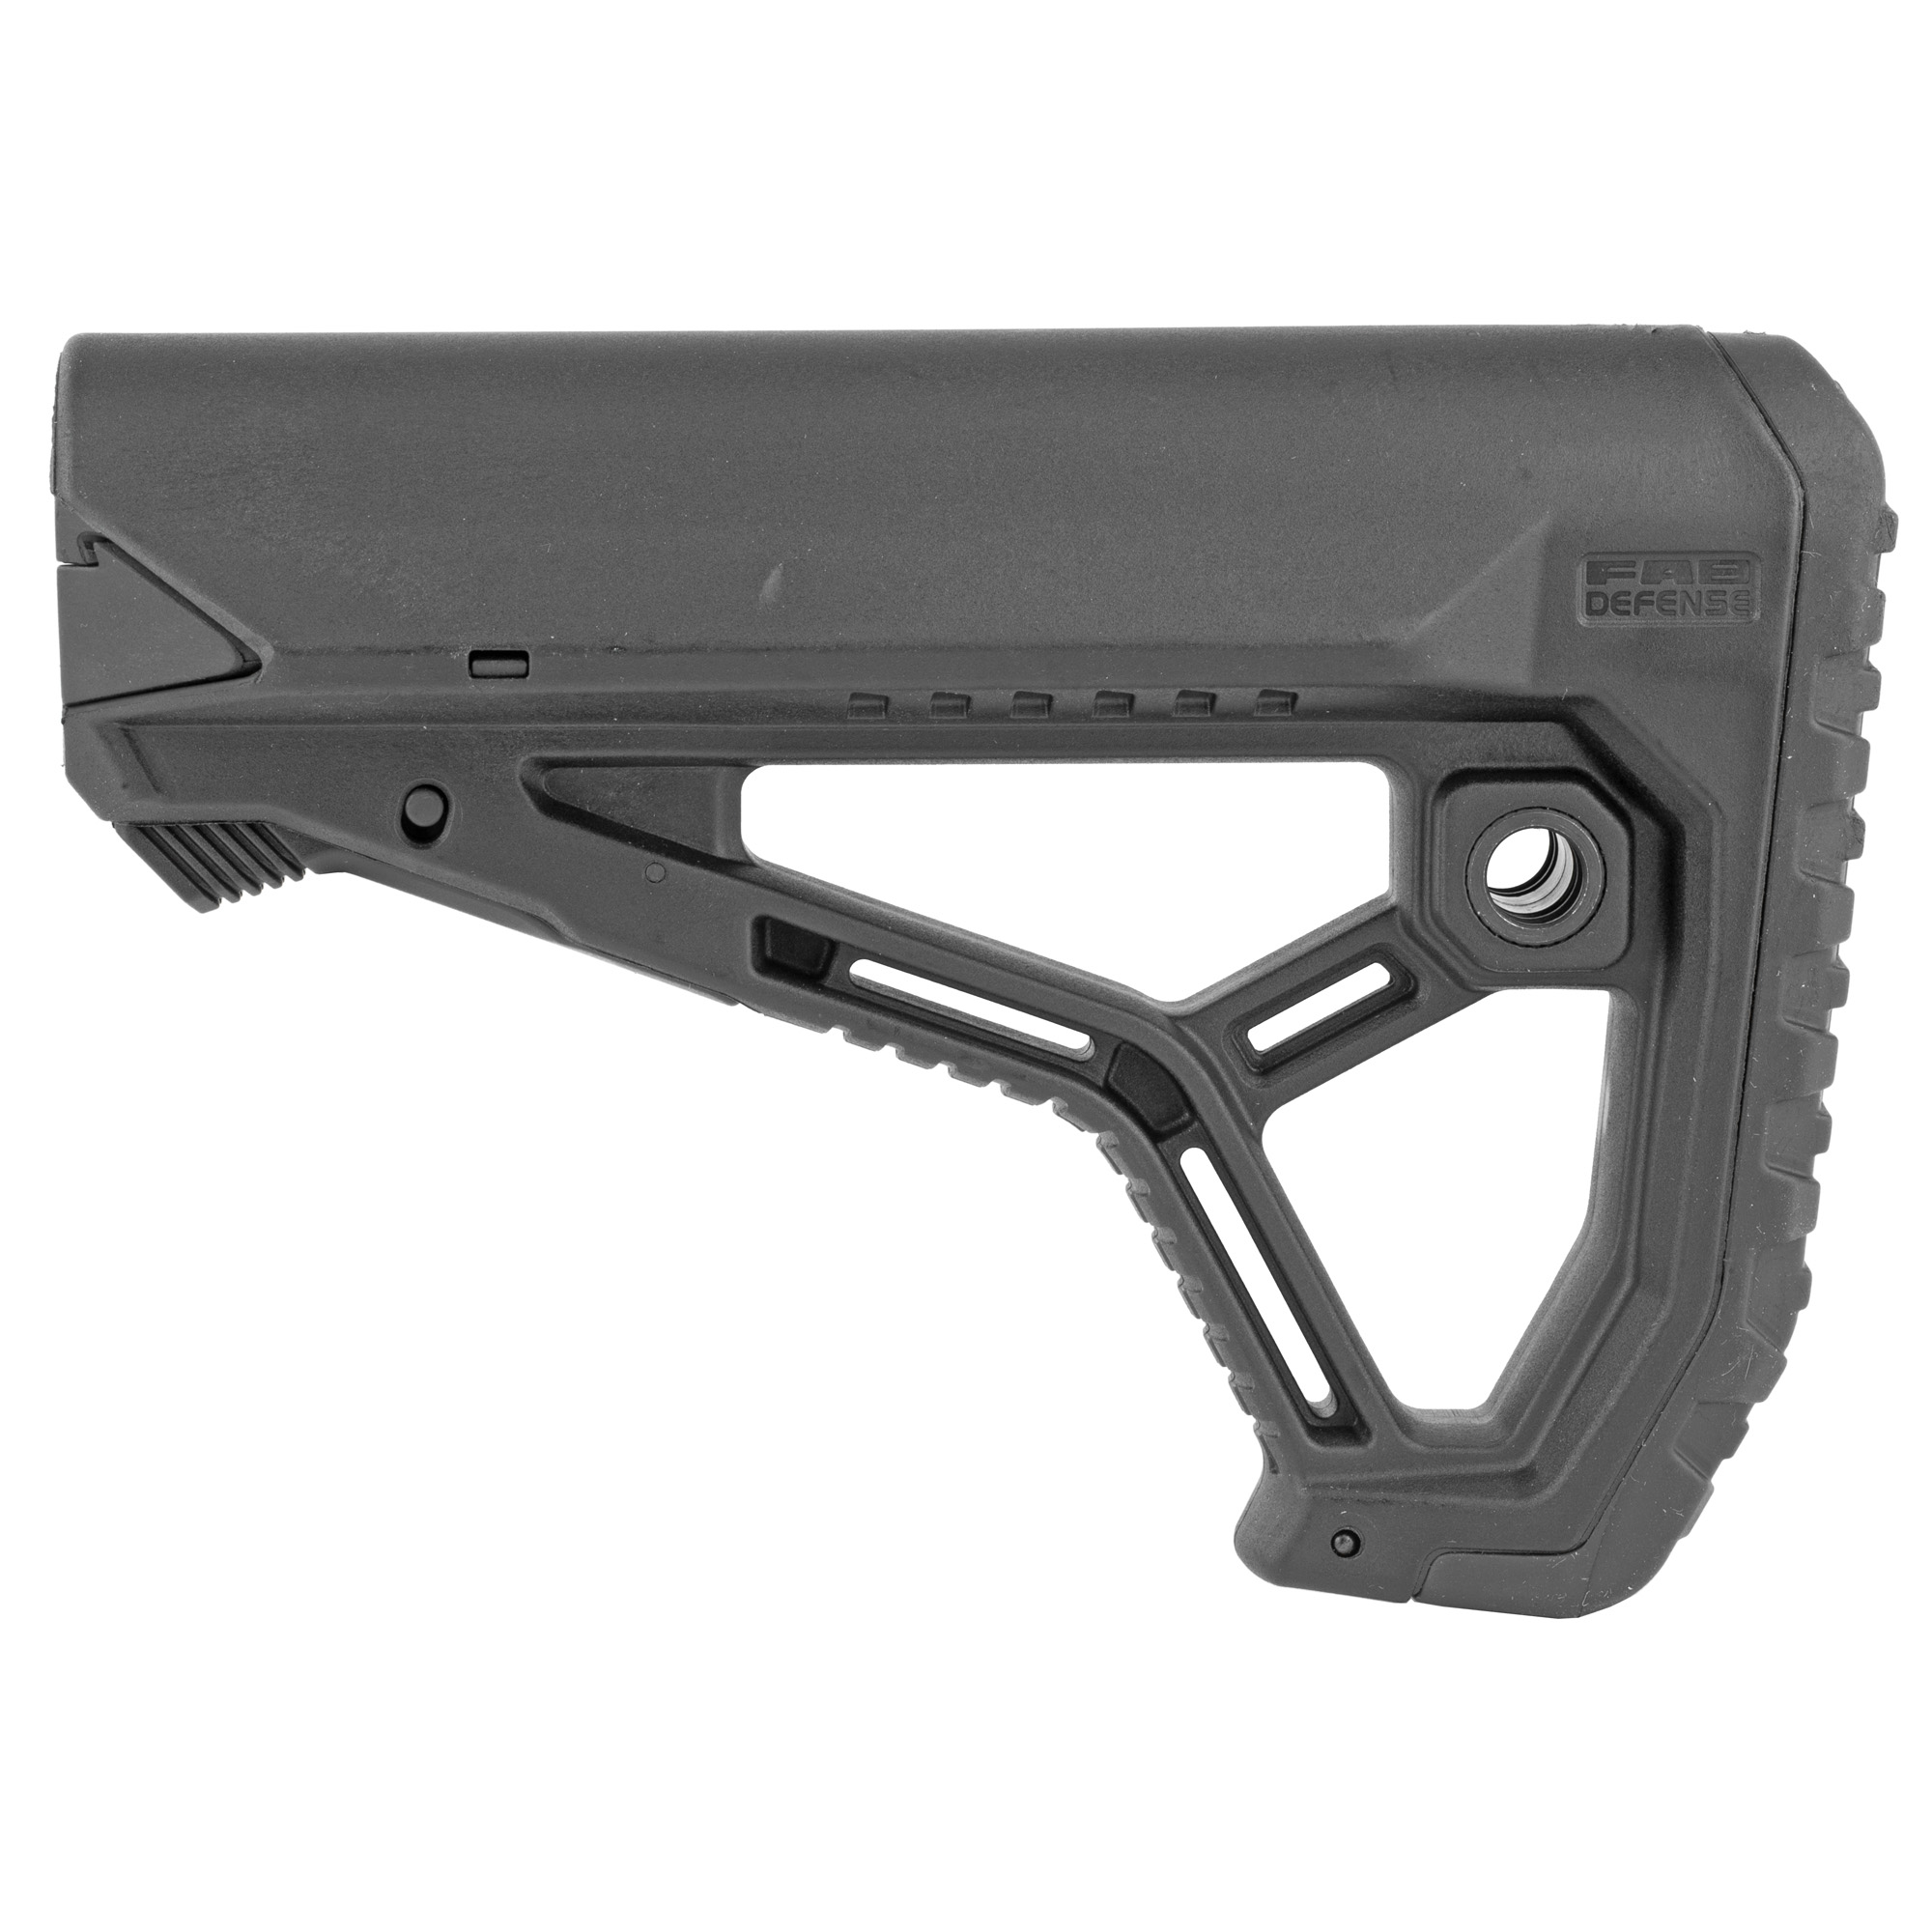 "The GL-Core is their newest addition to their line of buttstocks. The integrated cheek weld"" ergonomic buttpad and an interchanging tube adapter"" provide an unmatched fit on Mil-Spec and Commercial buffer tubes"" with a high level of efficiency and comfort."